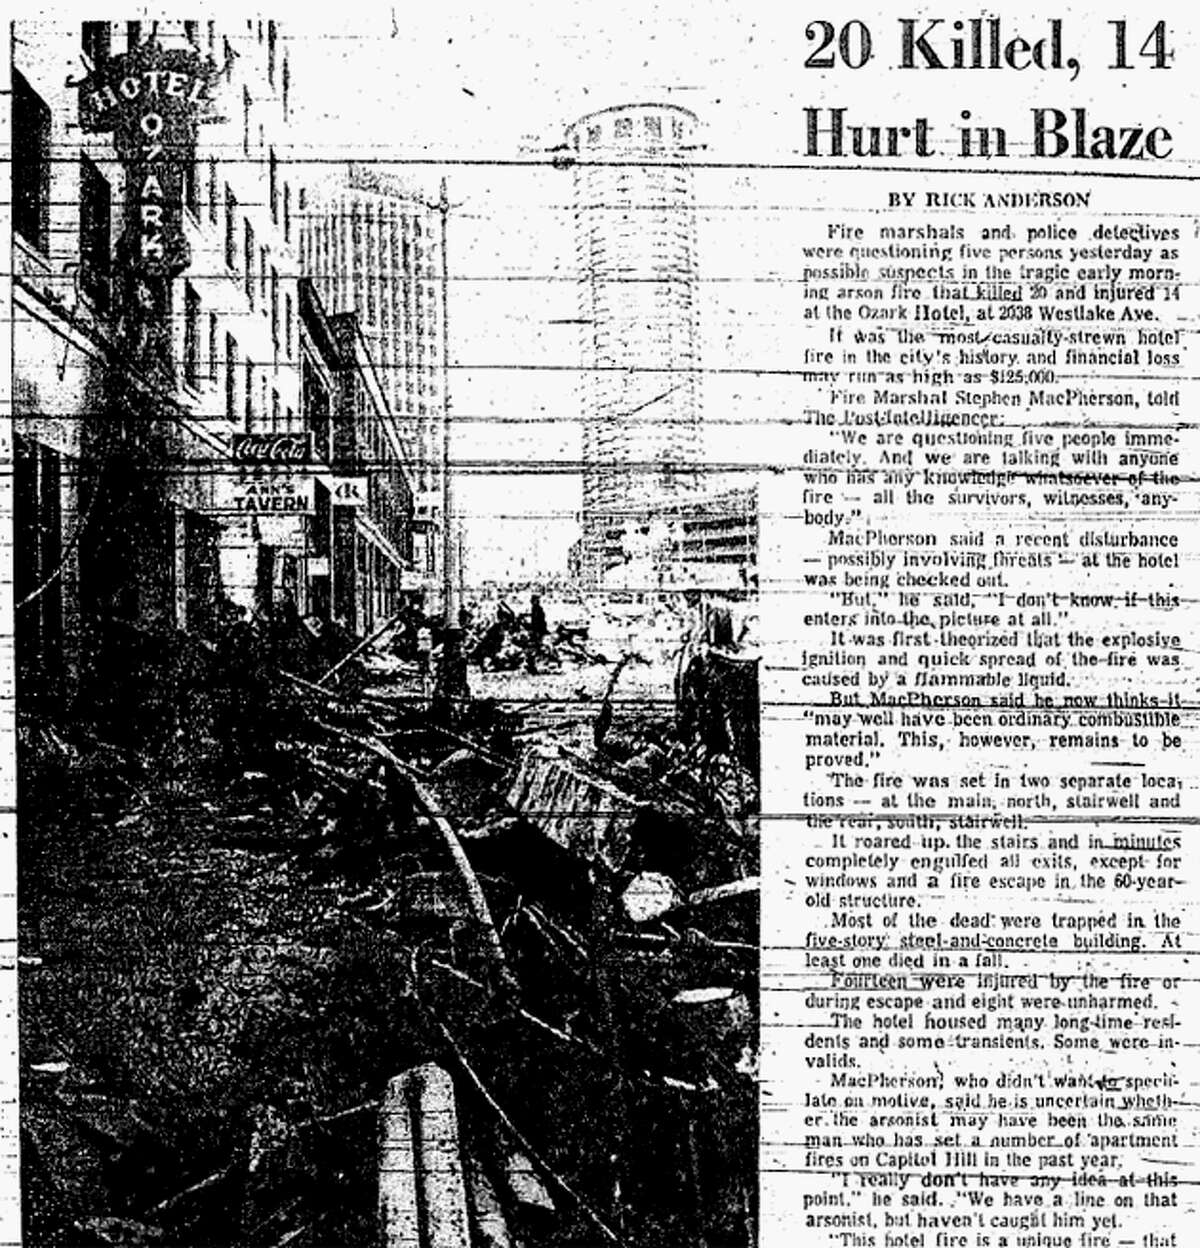 The Ozark Hotel fire in March 1971 killed 21 people overall and injured 13. One of the victims died after being taken to a hospital.